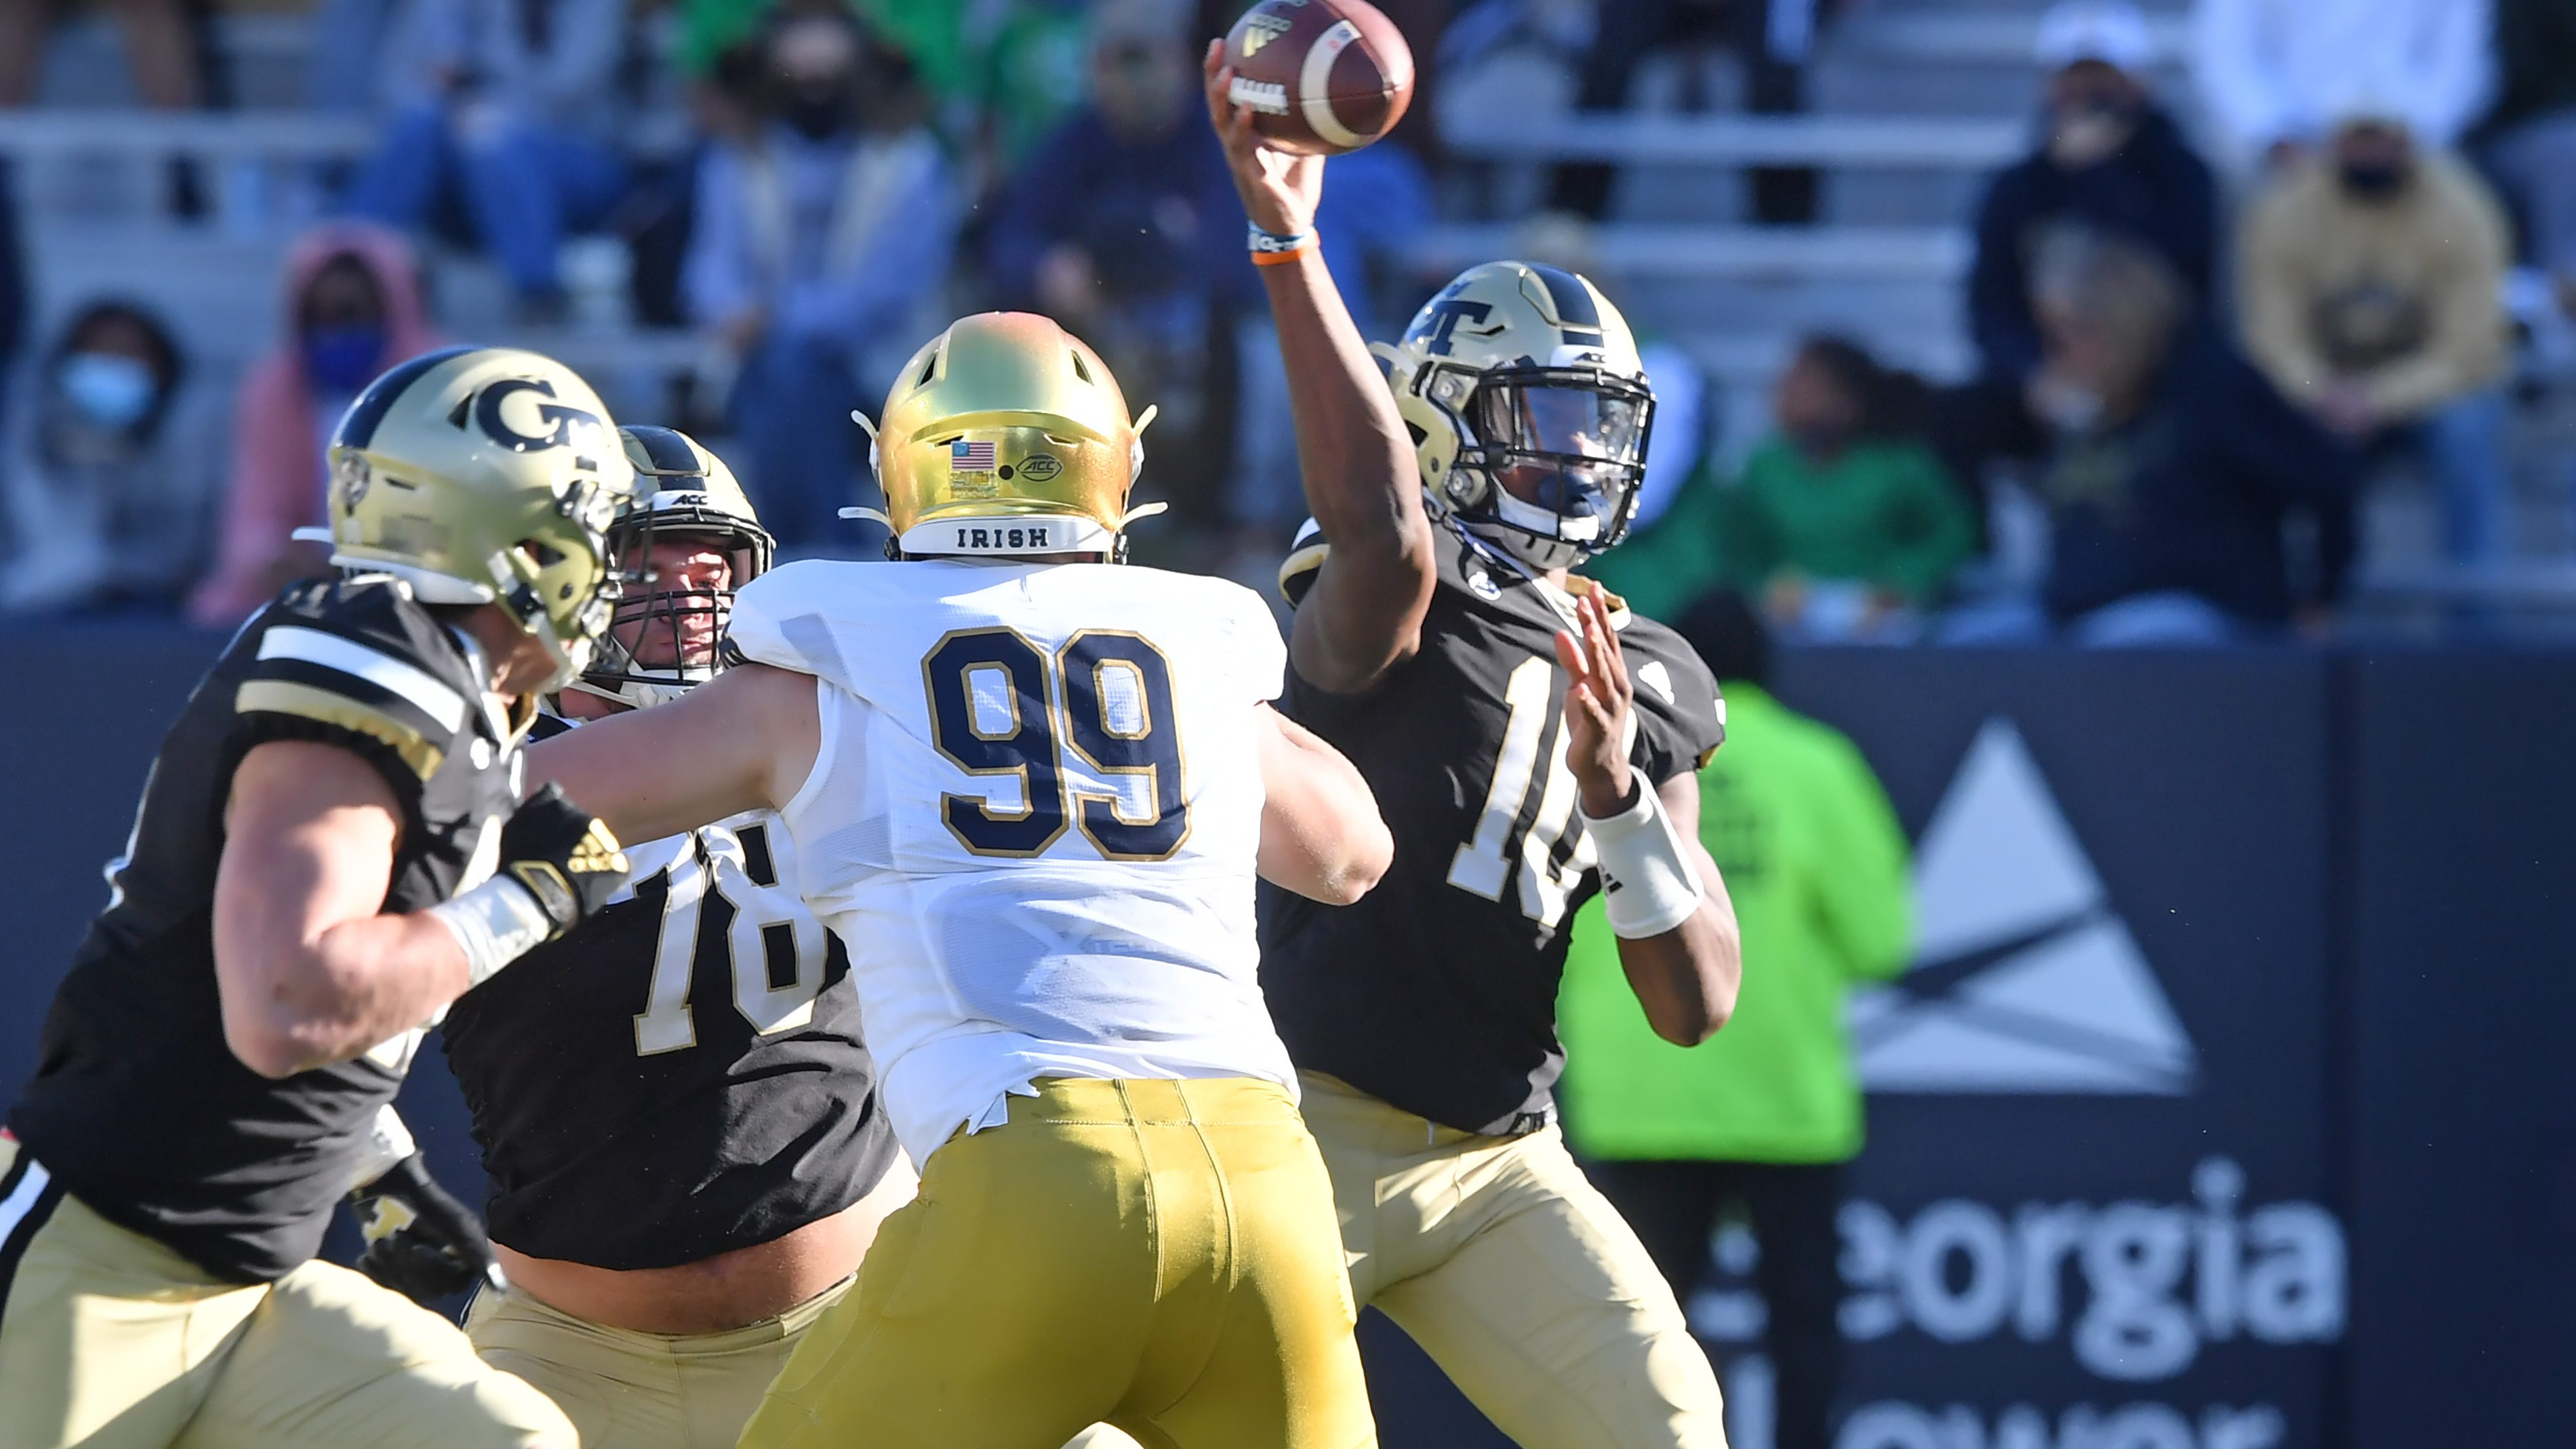 Inside the Irish   NBC Sports - Page 10 of 1125 - Notre Dame ...